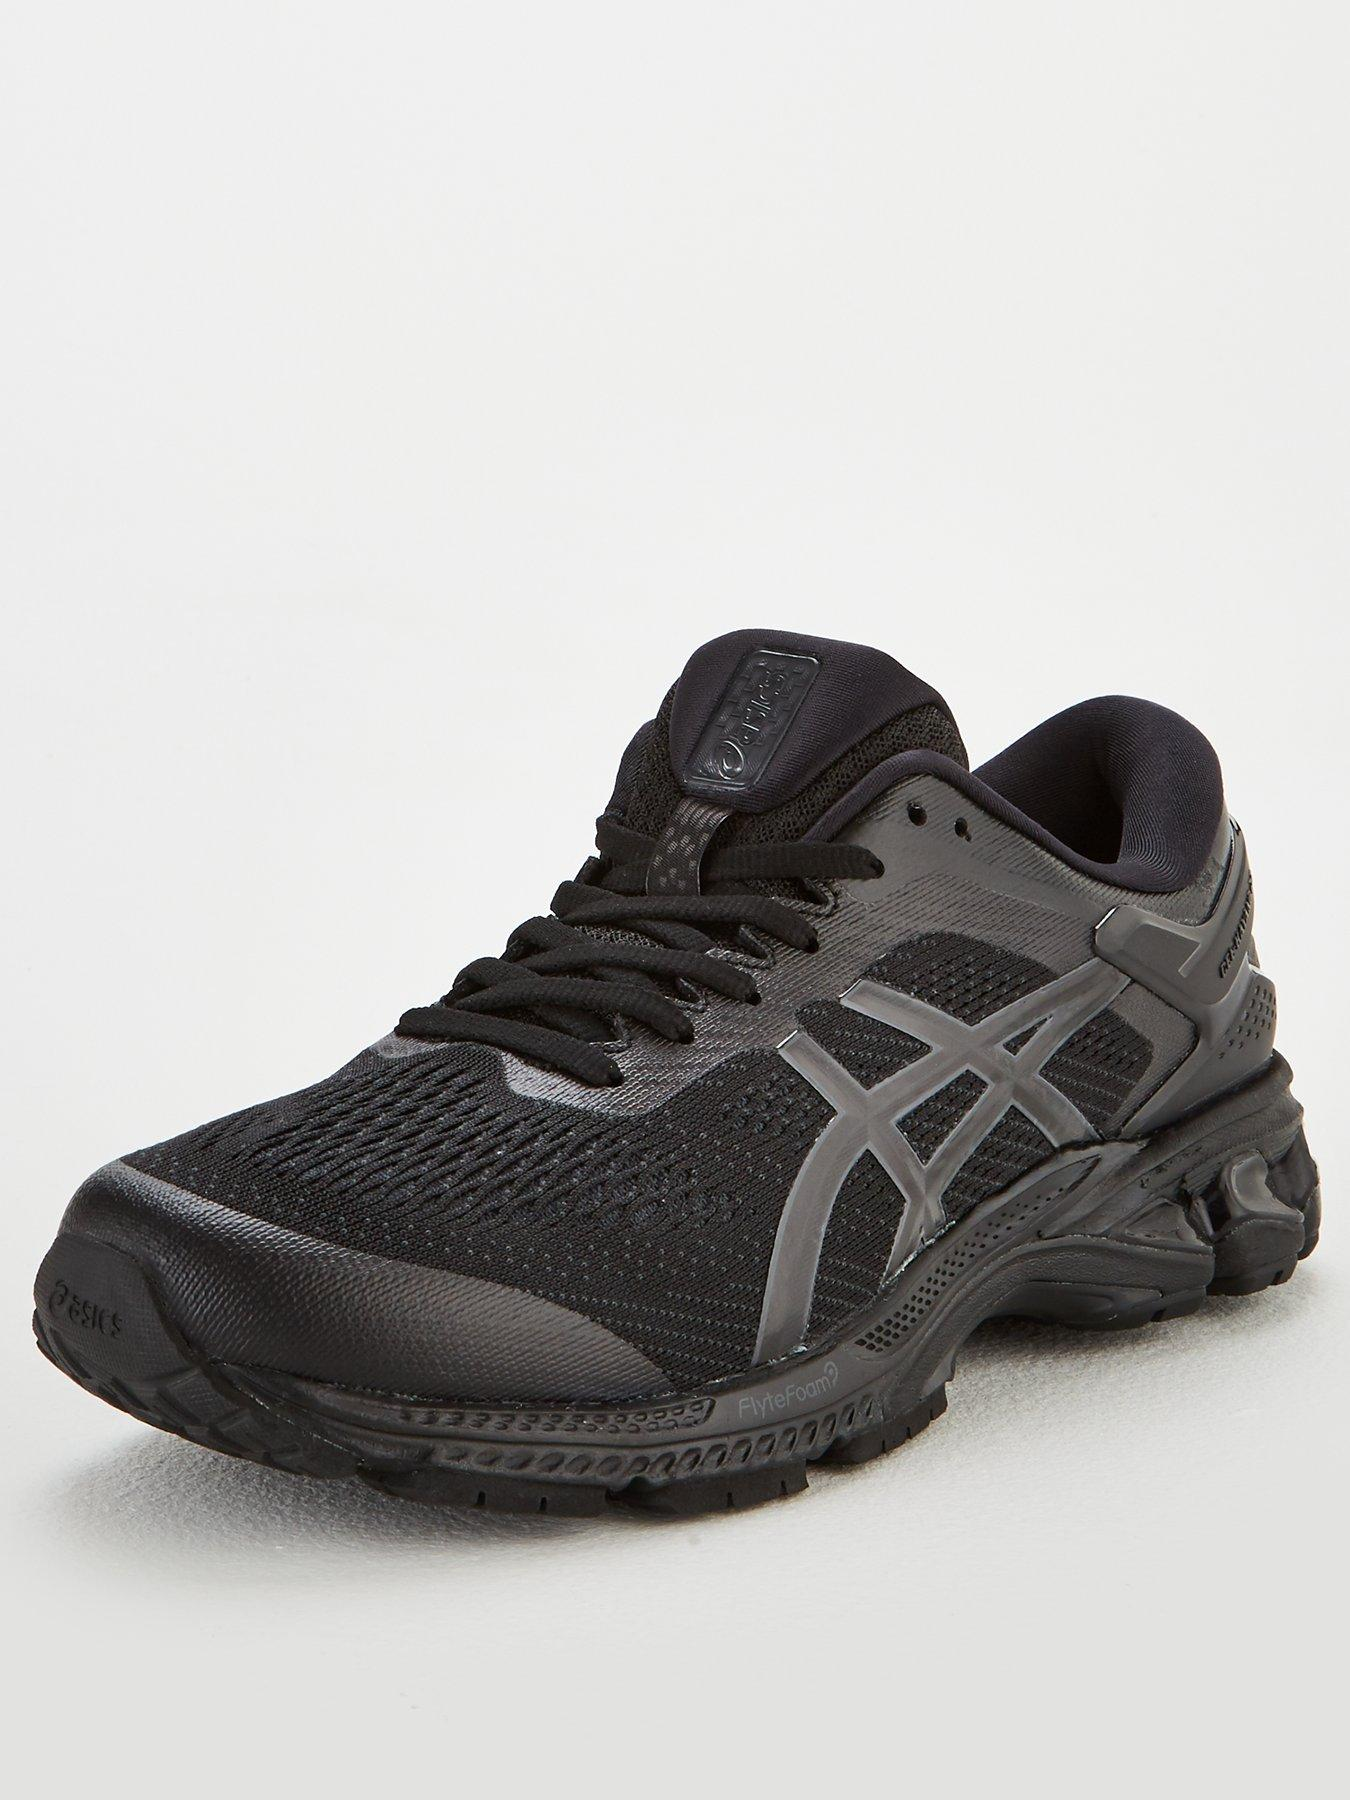 Shoesamp; Www Sports Leisure Www AsicsMens Leisure Shoesamp; Sports AsicsMens oxBWrCde